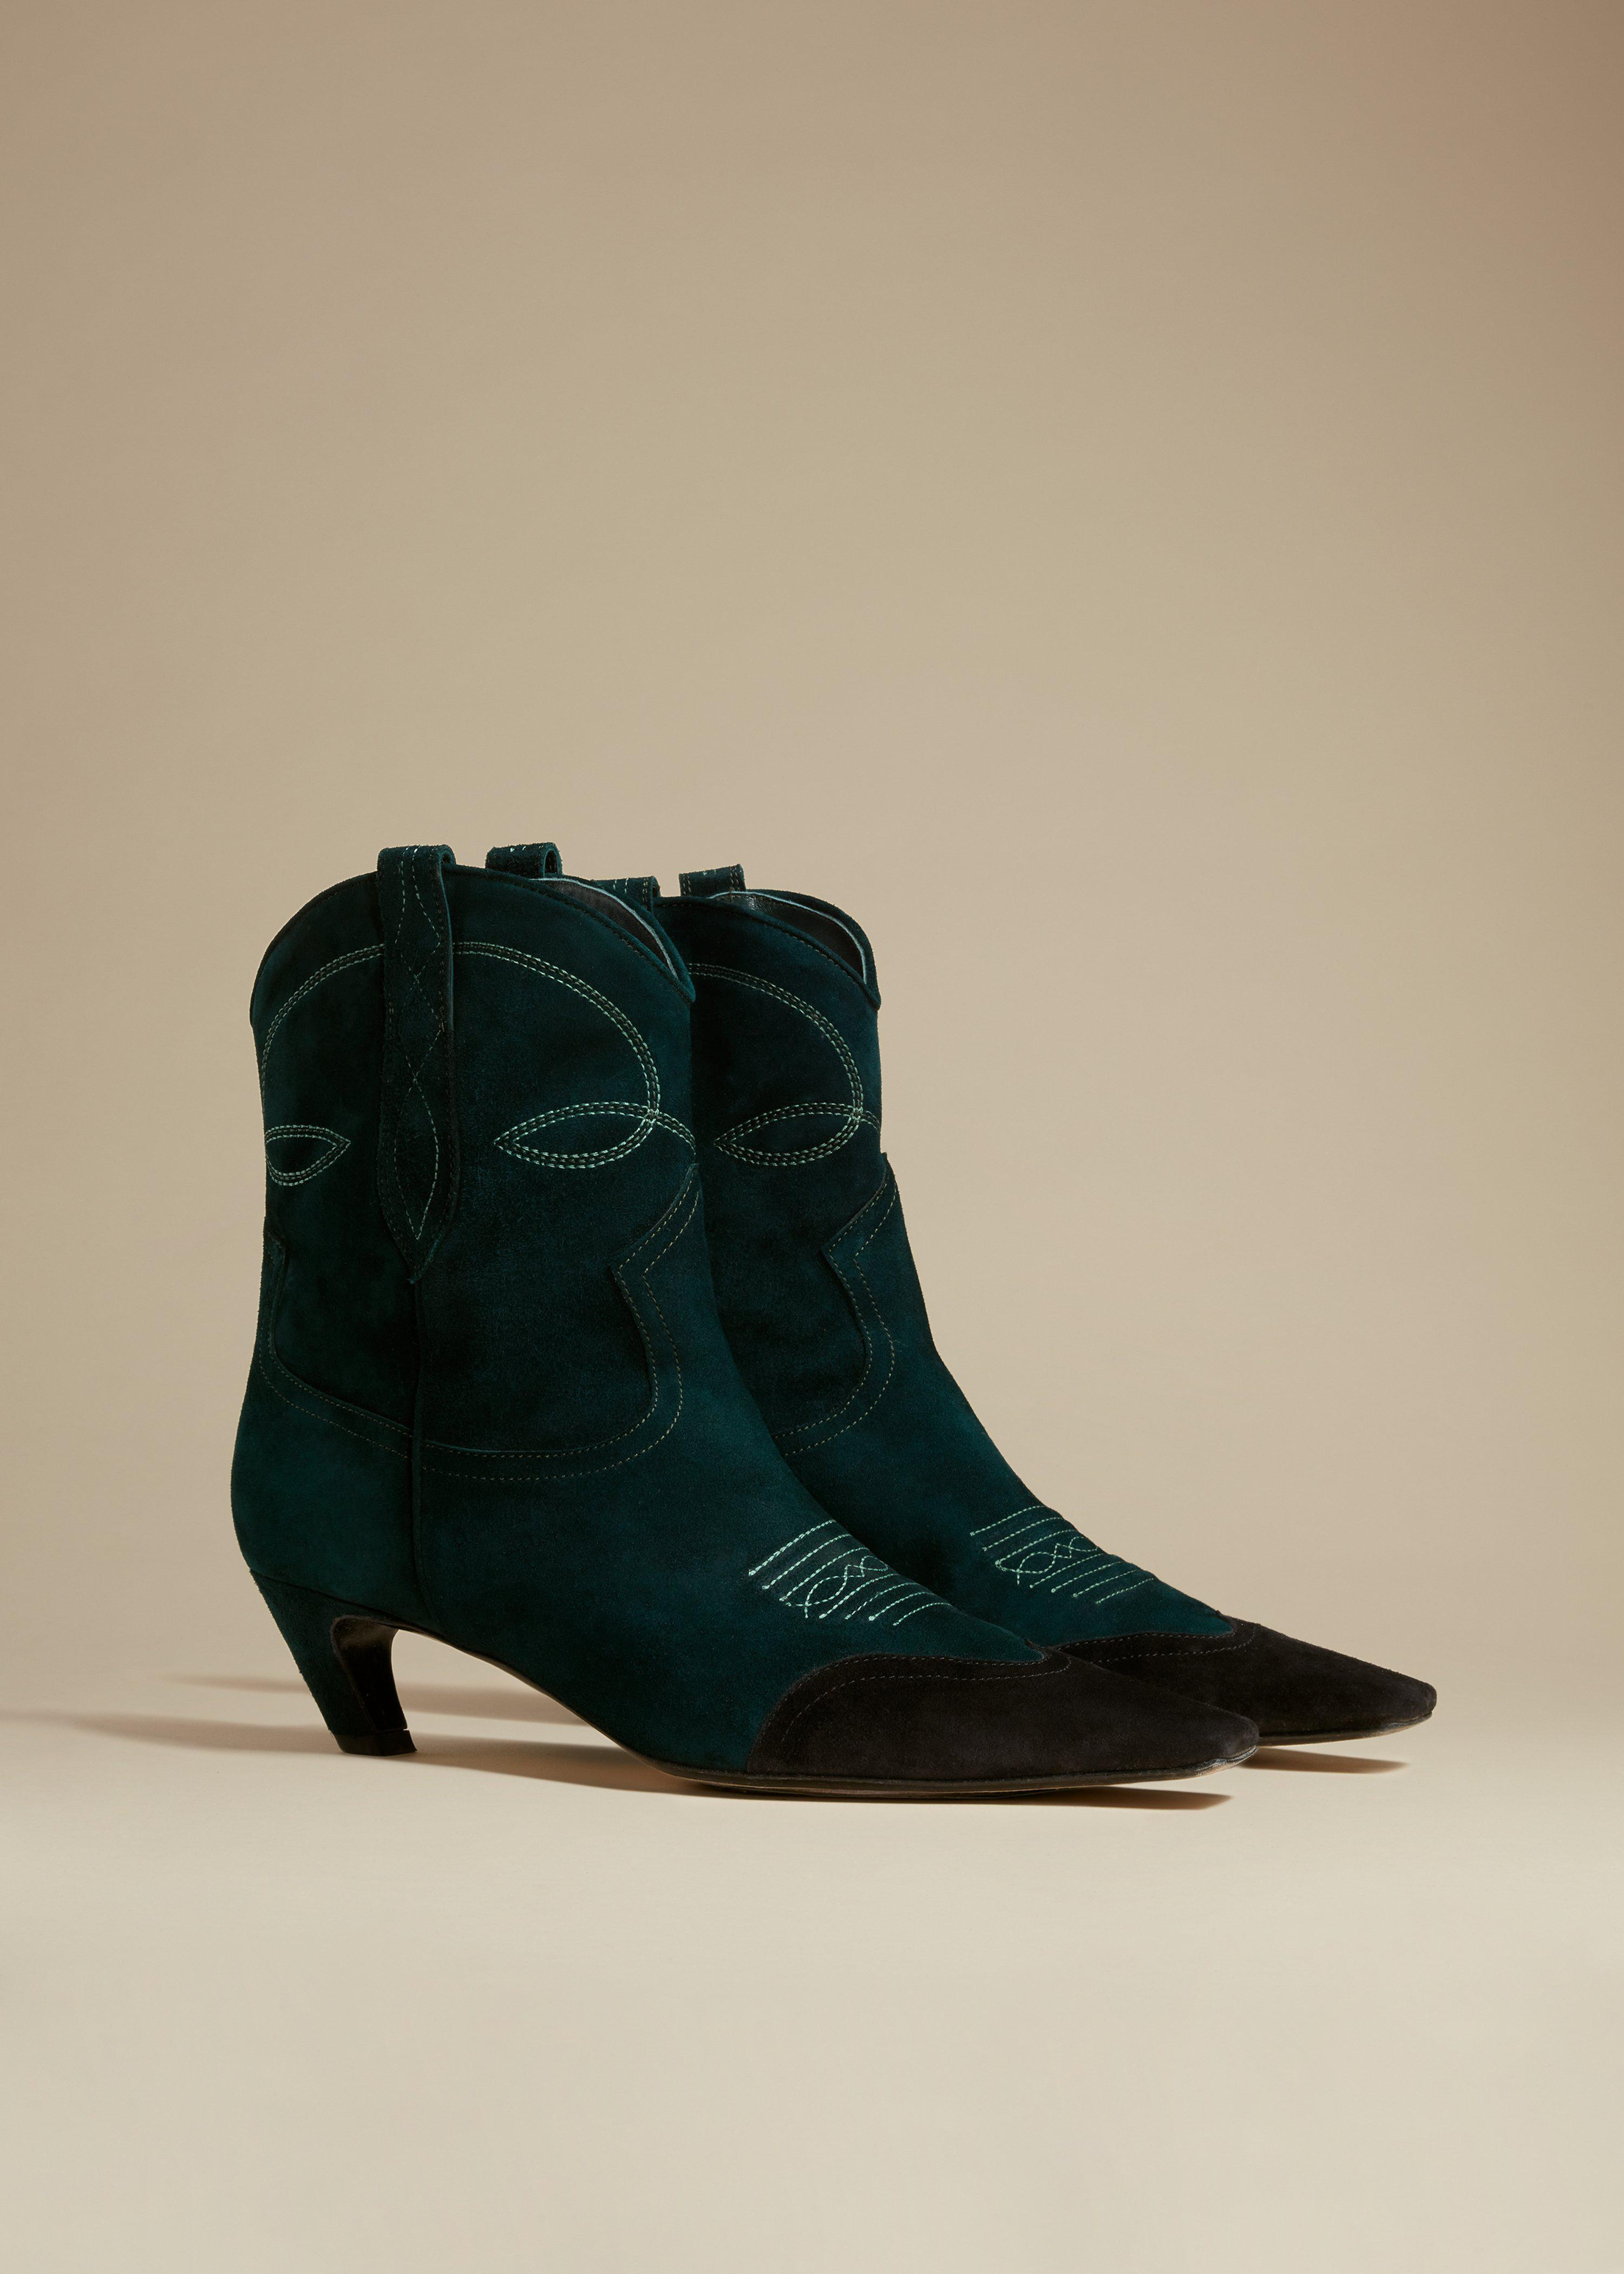 The Dallas Ankle Boot in Hunter Green Suede 1